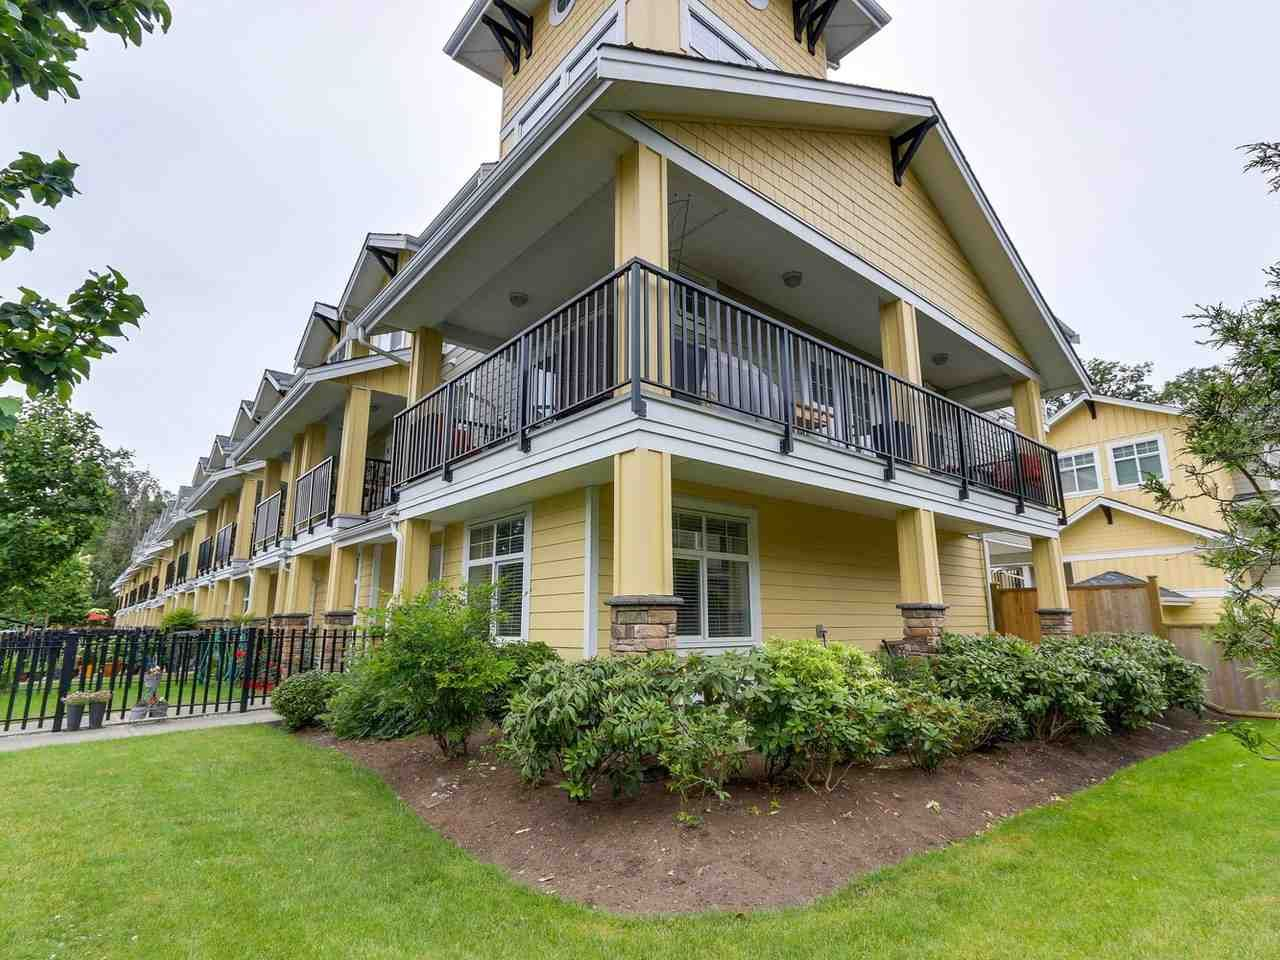 """Photo 19: Photos: 31 17171 2B Avenue in Surrey: Pacific Douglas Townhouse for sale in """"AUGUSTA TOWNHOUSES"""" (South Surrey White Rock)  : MLS®# R2280398"""